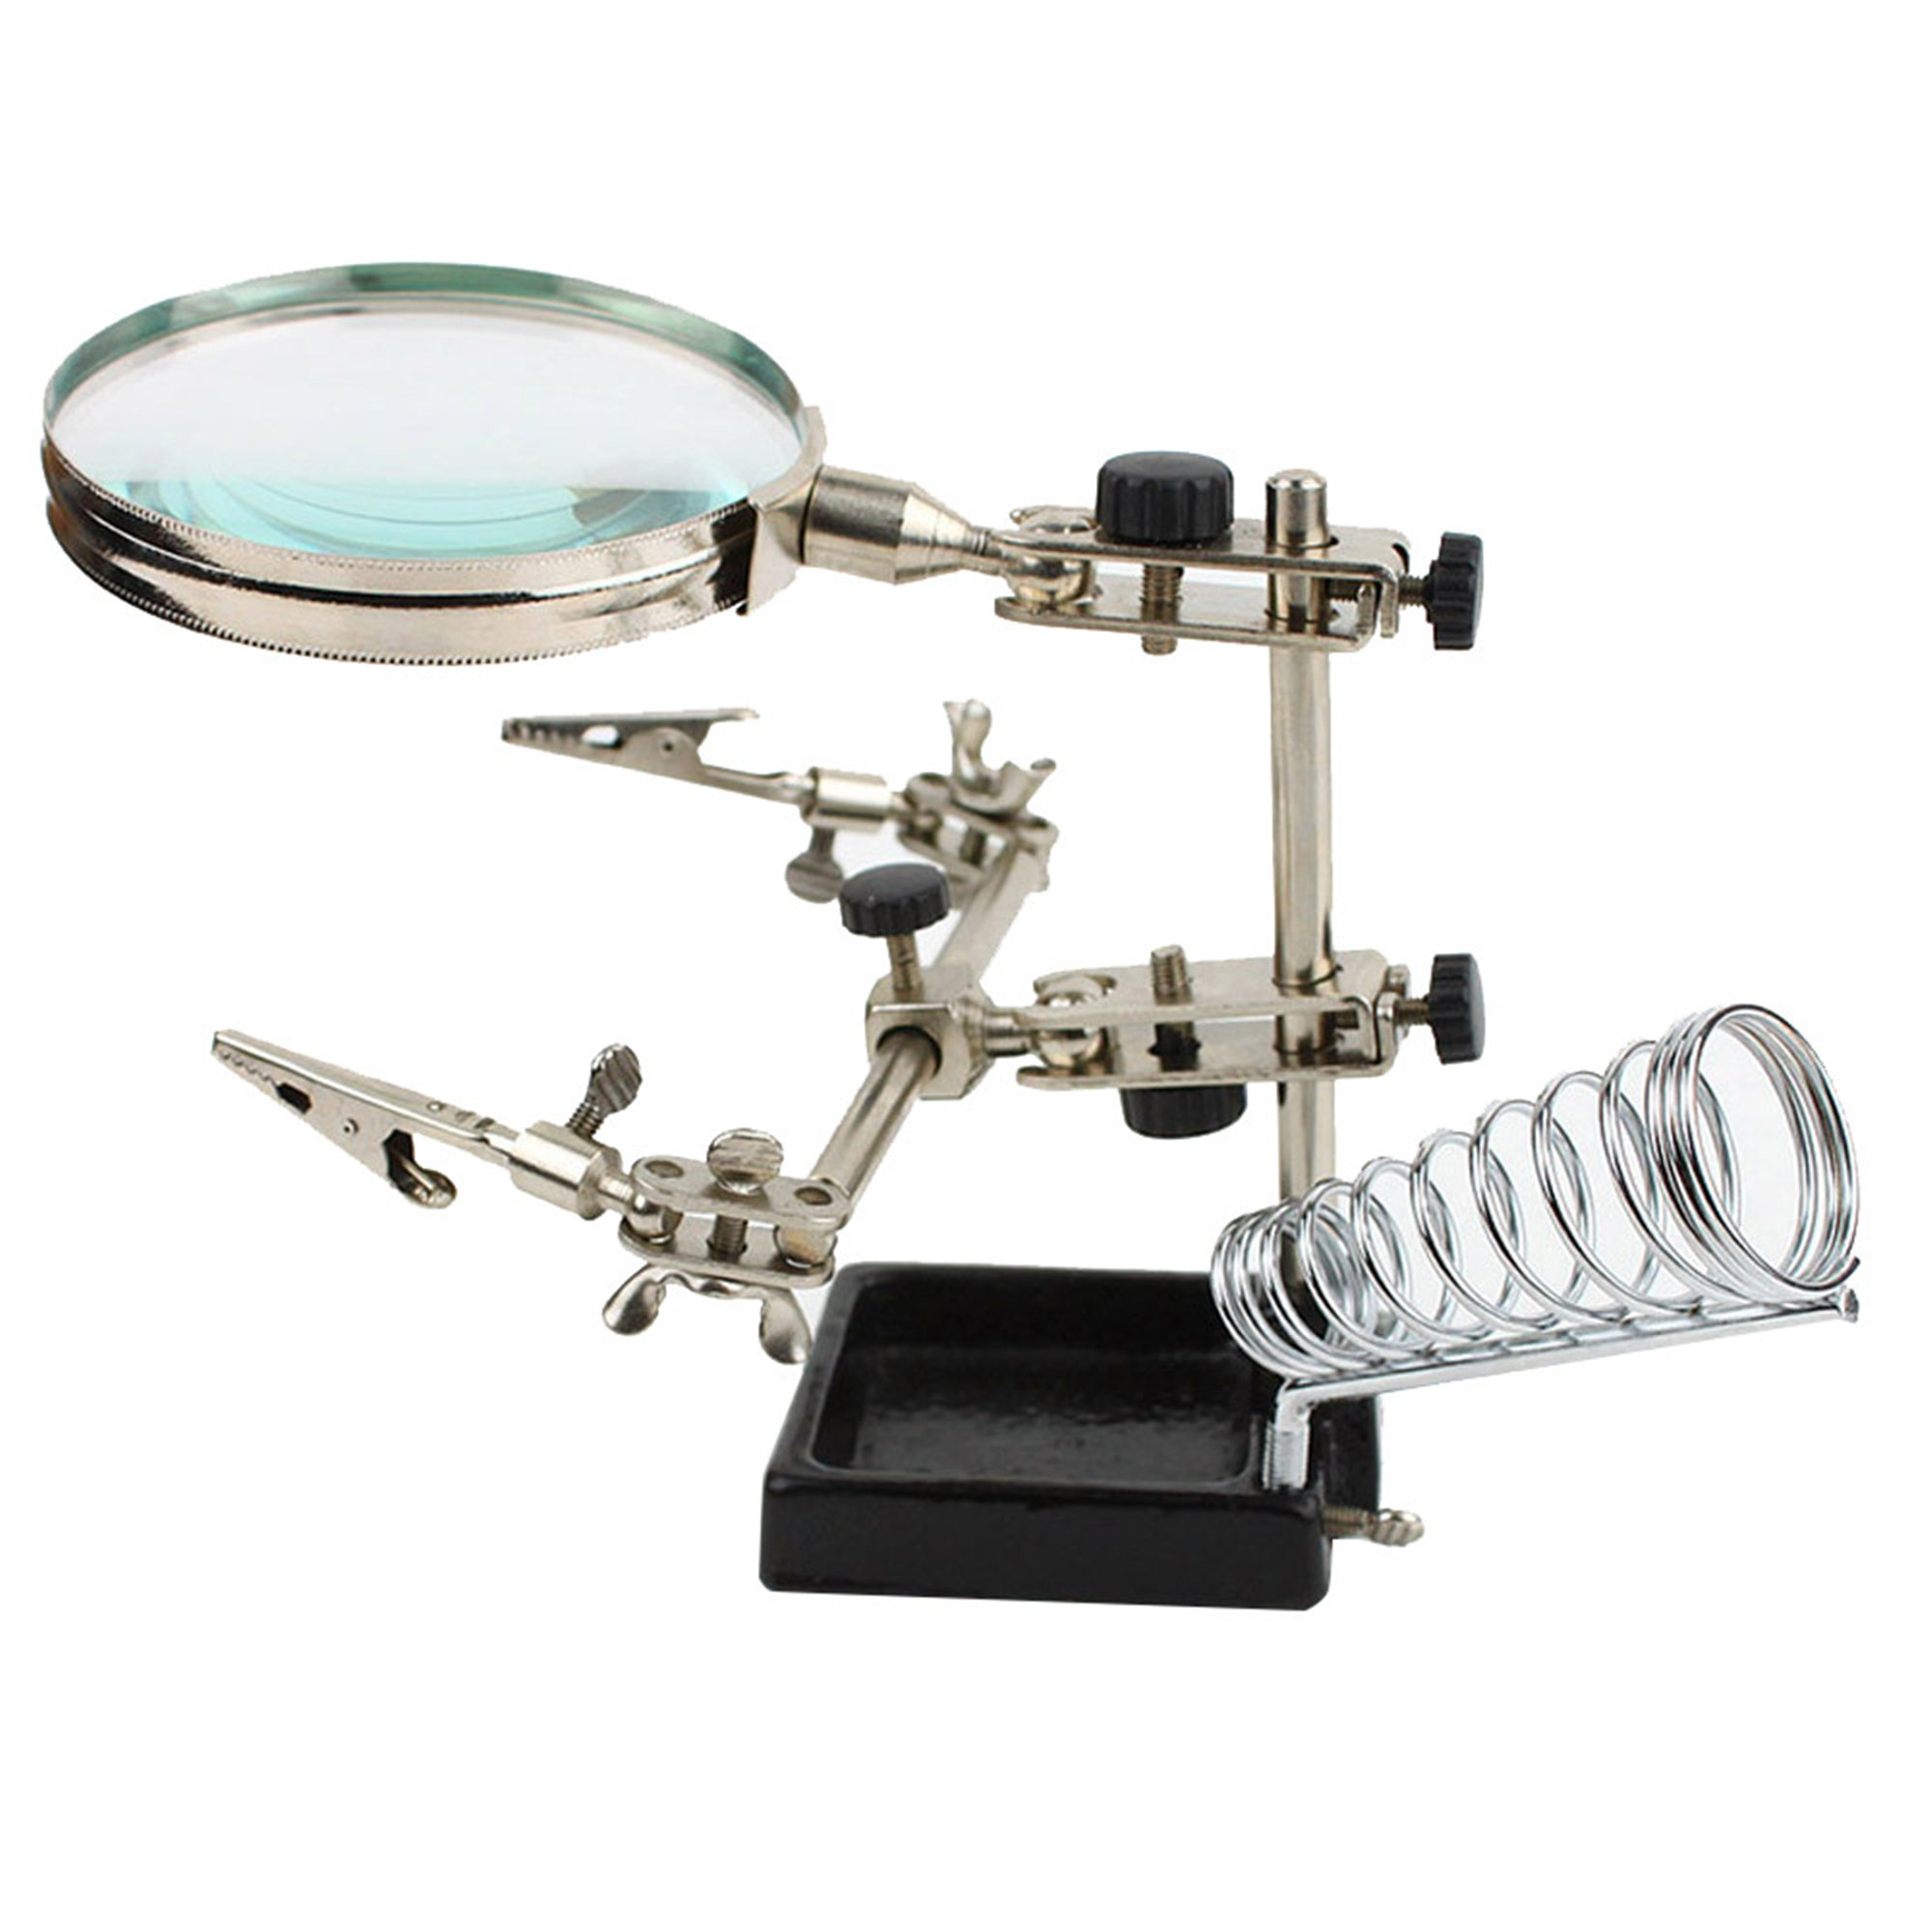 SANNYSIS University School Magnifier Auxiliary Clamp welding Soldering Stand Desktop Magnifying Glass